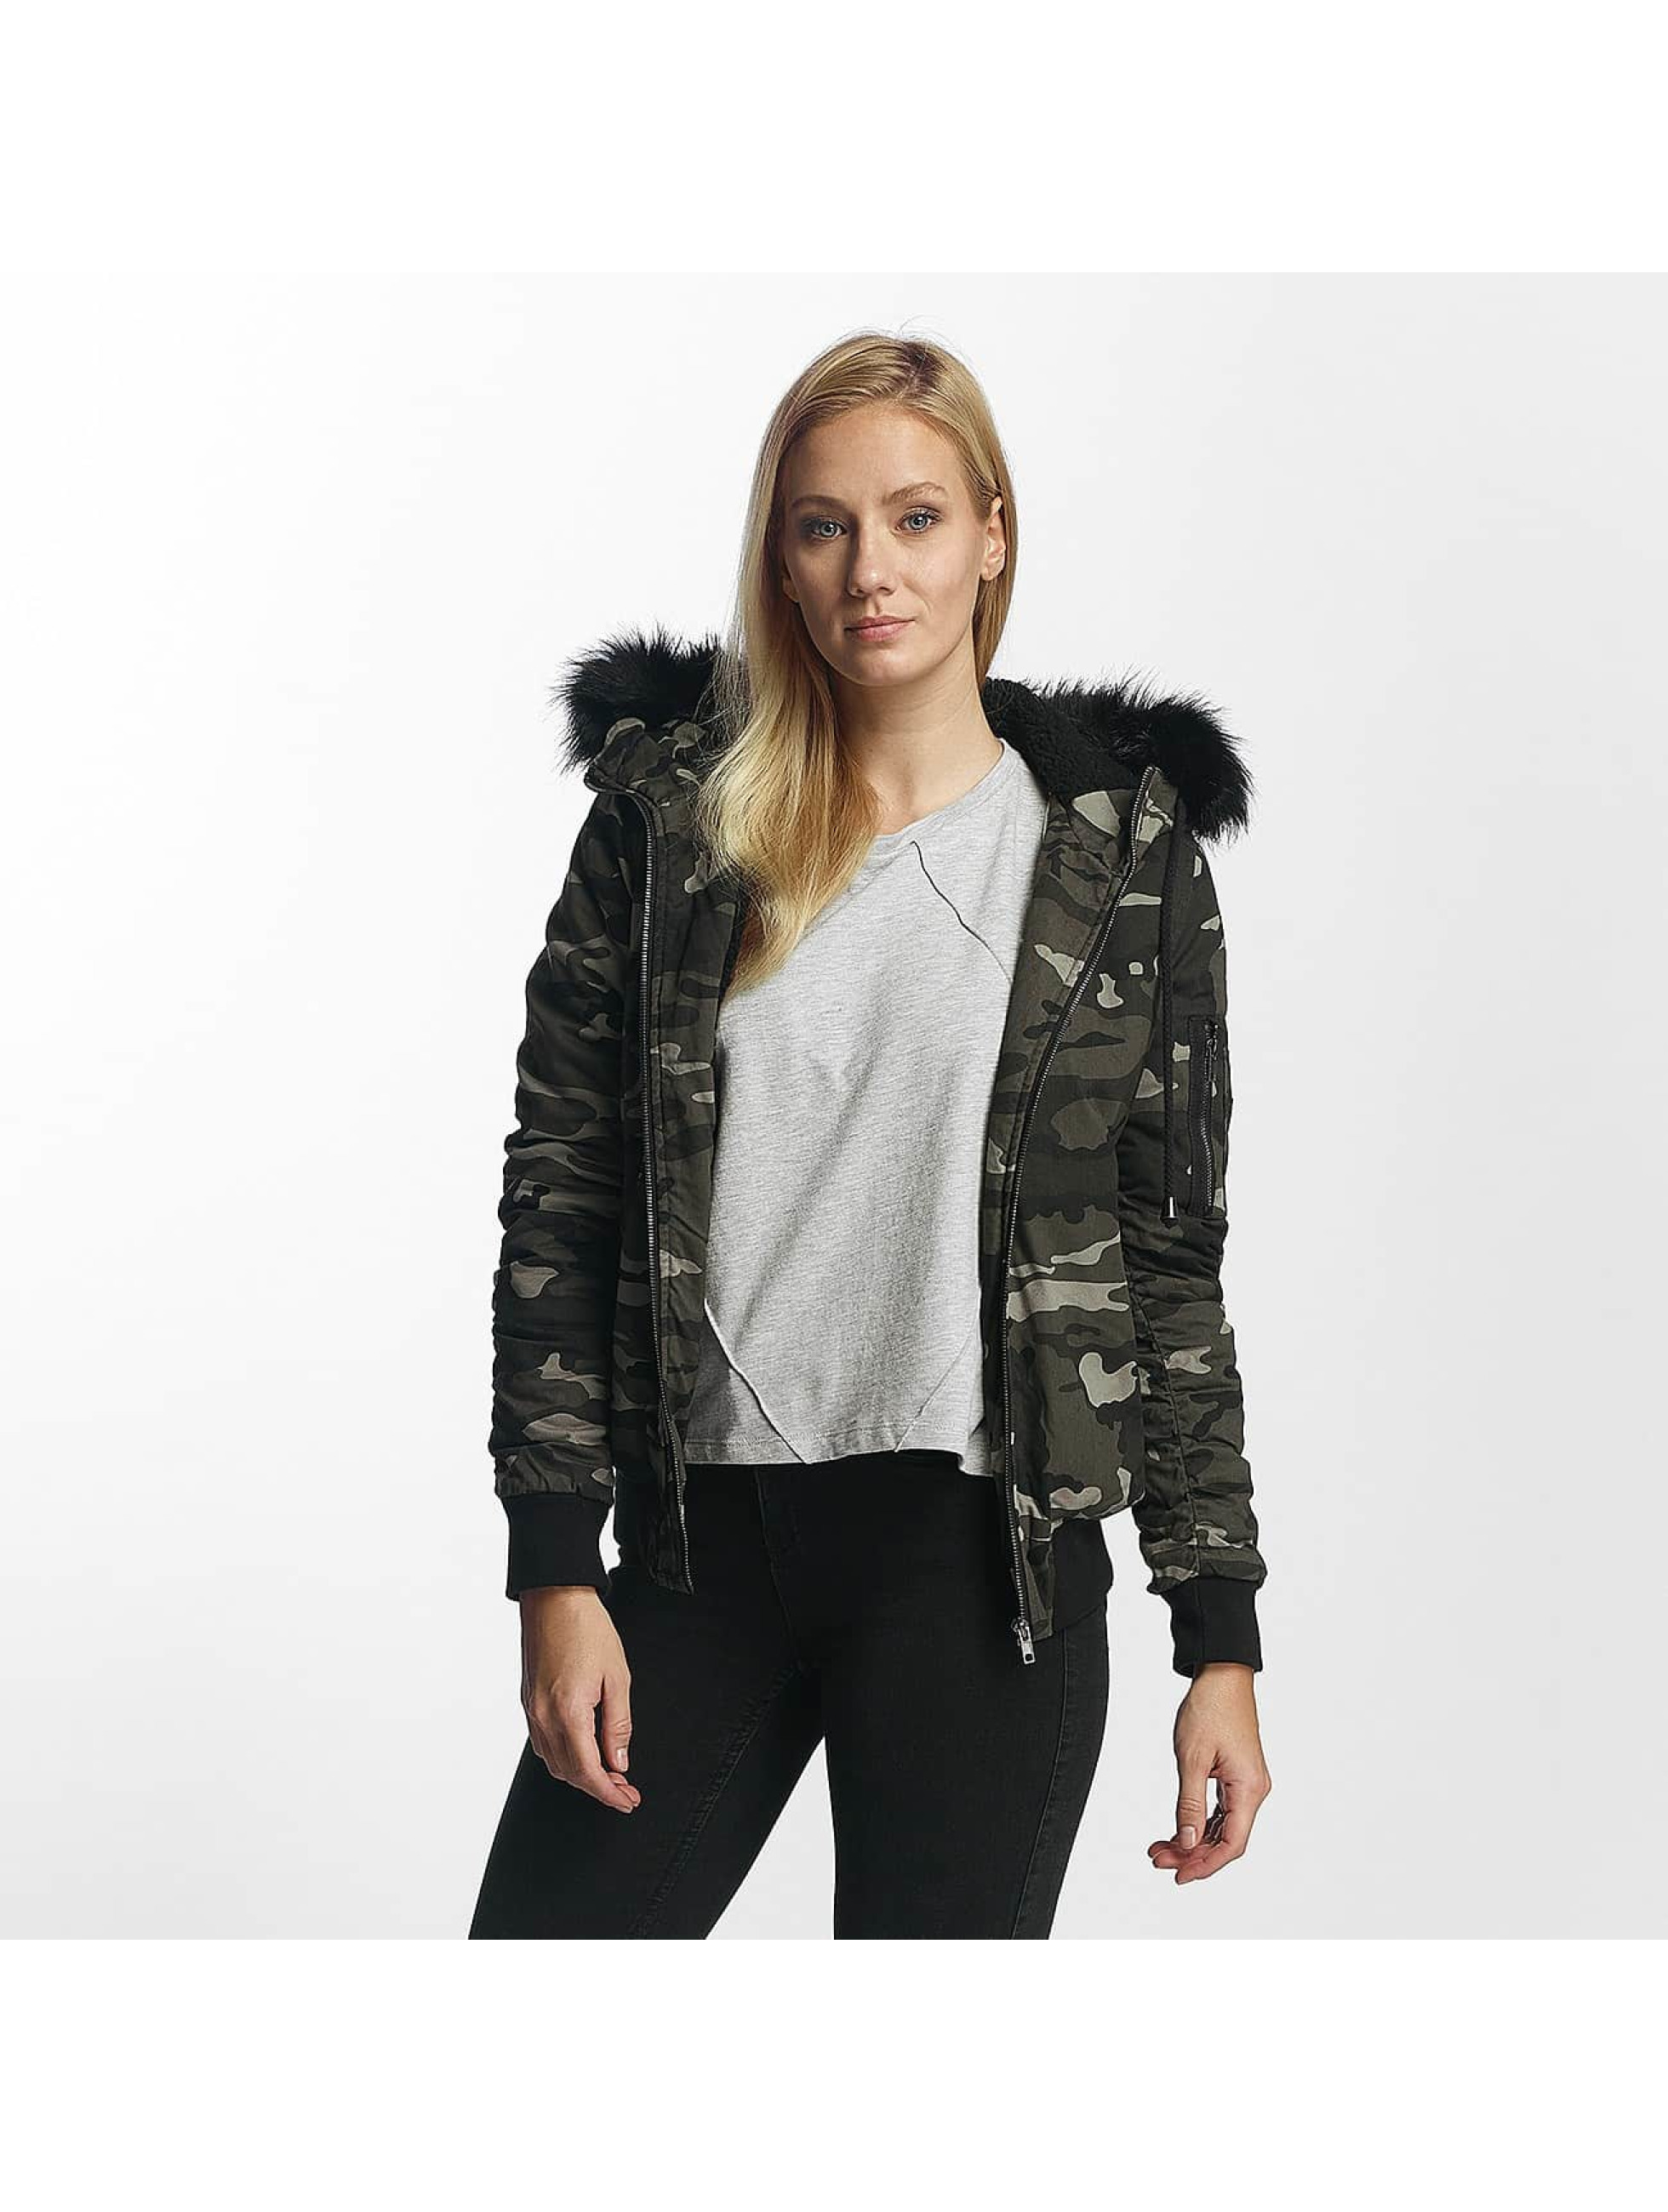 def bomber camouflage femme manteau hiver def acheter pas cher manteau veste 351938. Black Bedroom Furniture Sets. Home Design Ideas